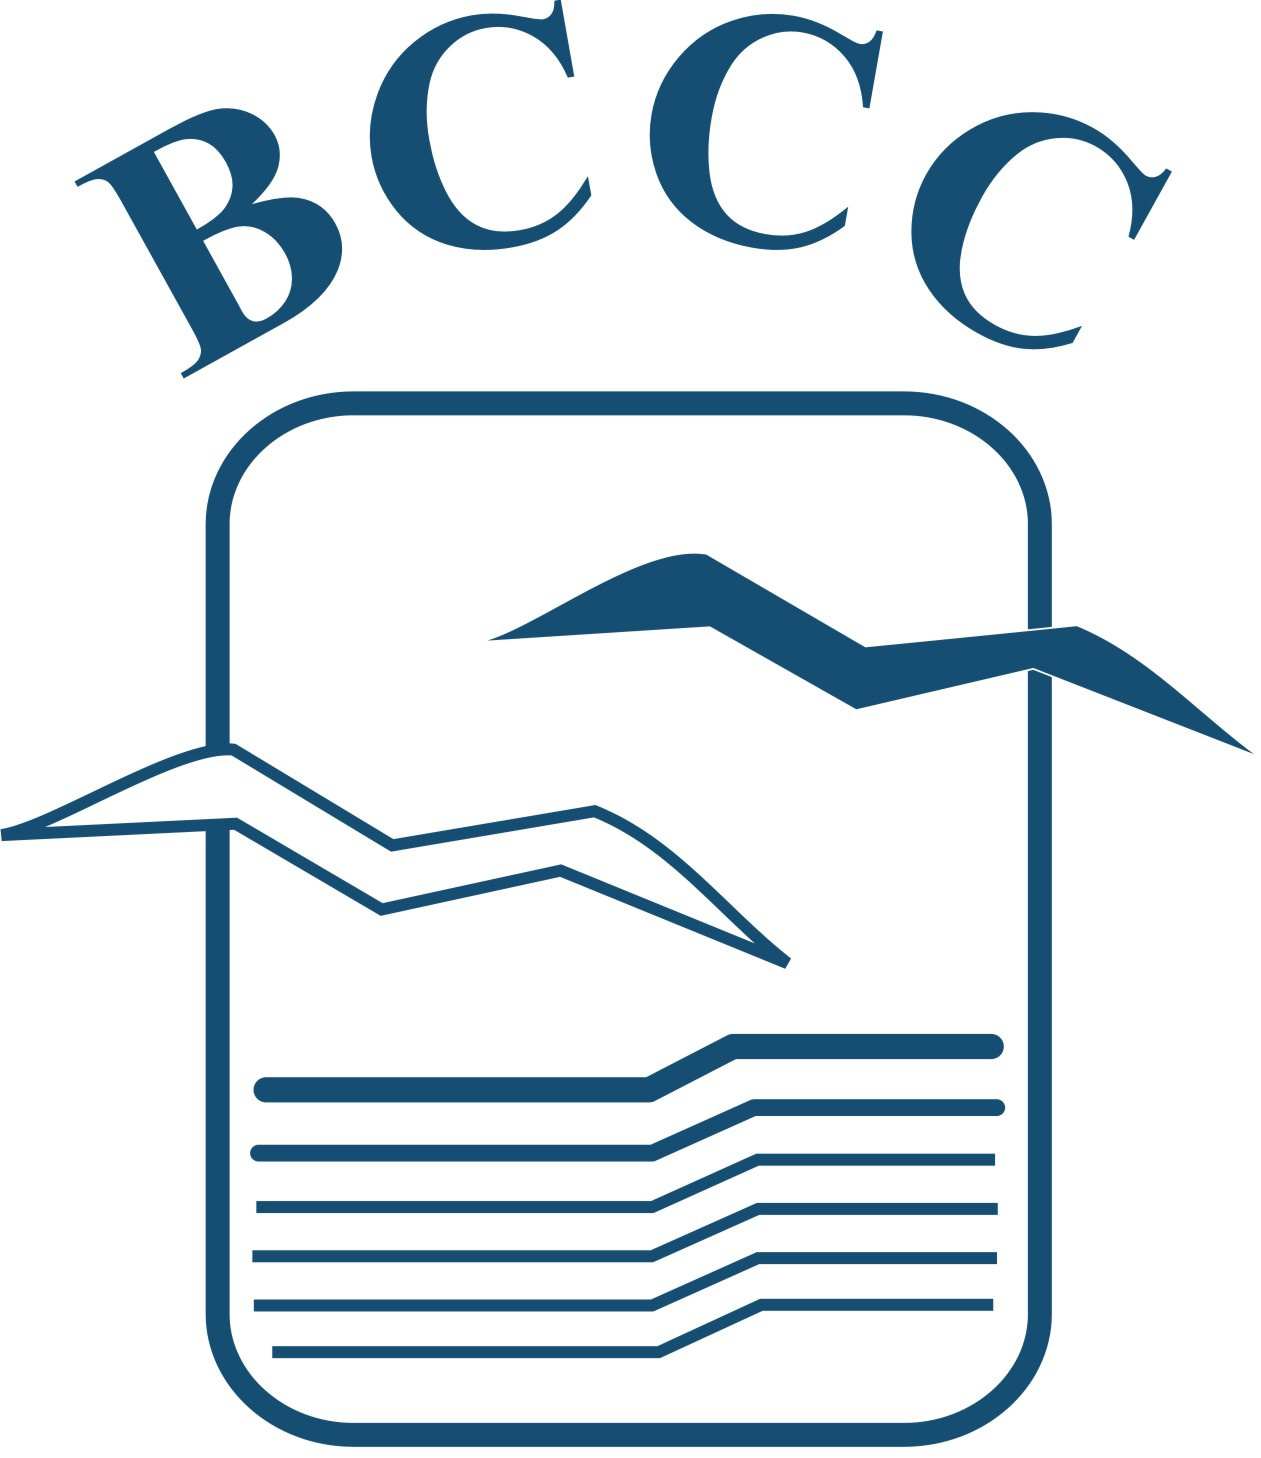 BCCC Gulls Logo in Blue.jpg